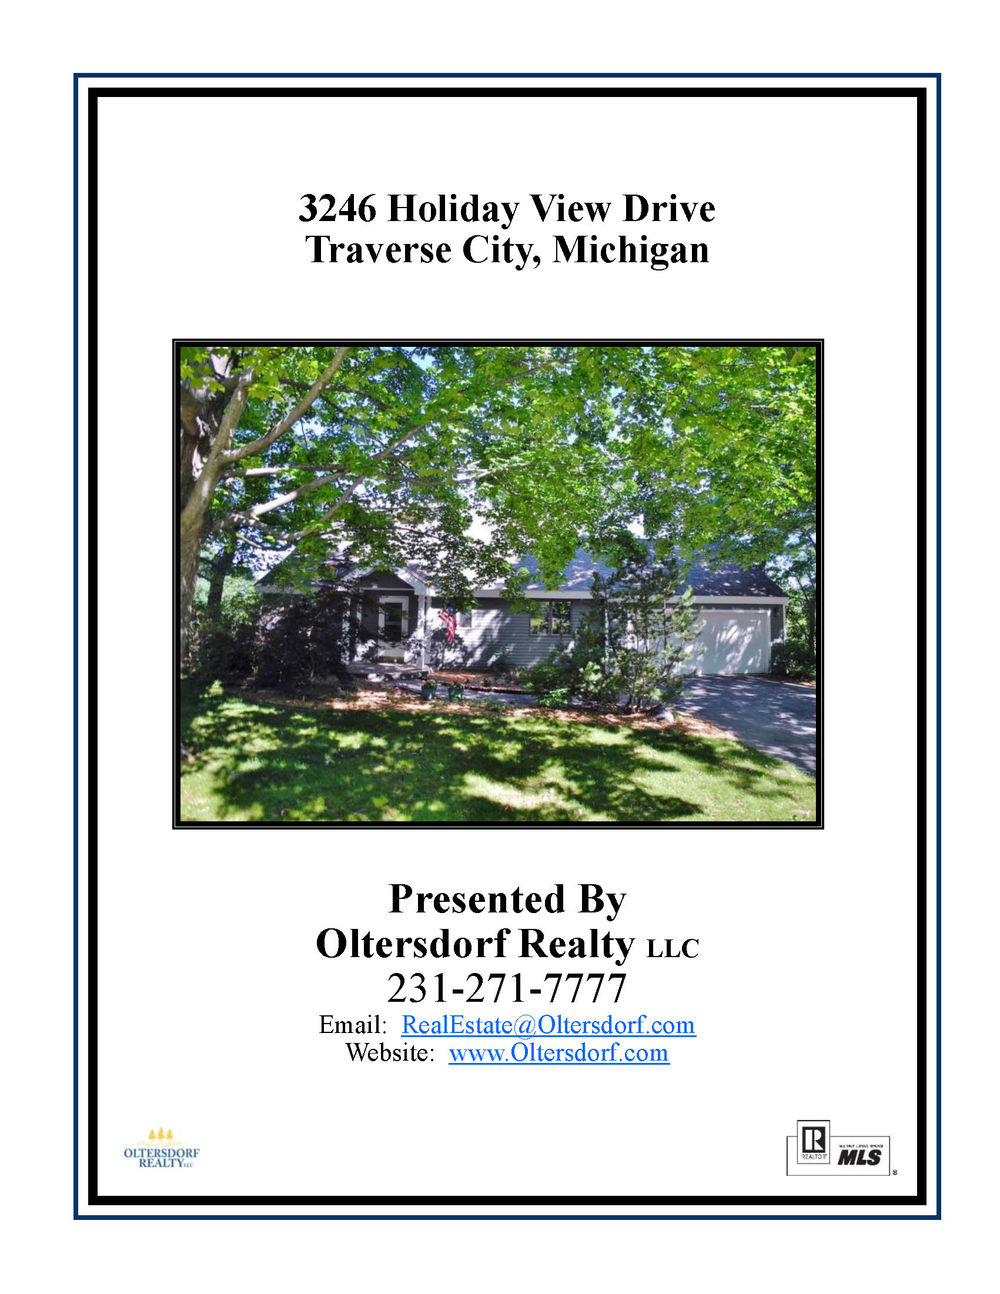 3246 Holiday View Drive, Traverse City, MI – 4 Bedroom, 3 bath Holiday Hills Home For sale by Oltersdorf Realty LLC (4).jpg